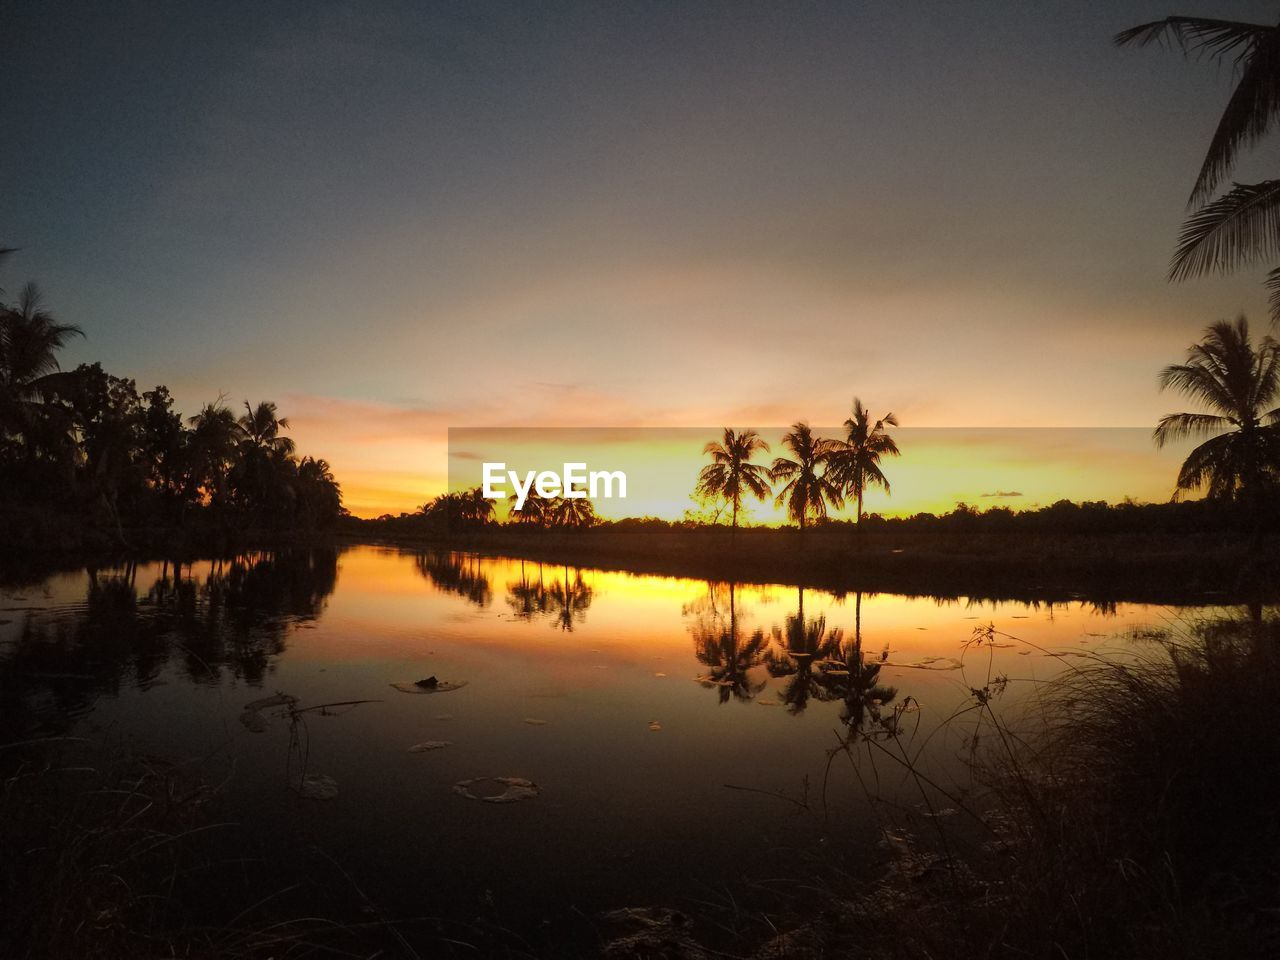 sky, sunset, water, tranquility, reflection, beauty in nature, tranquil scene, scenics - nature, tree, lake, plant, nature, orange color, no people, cloud - sky, idyllic, tropical climate, palm tree, silhouette, outdoors, coconut palm tree